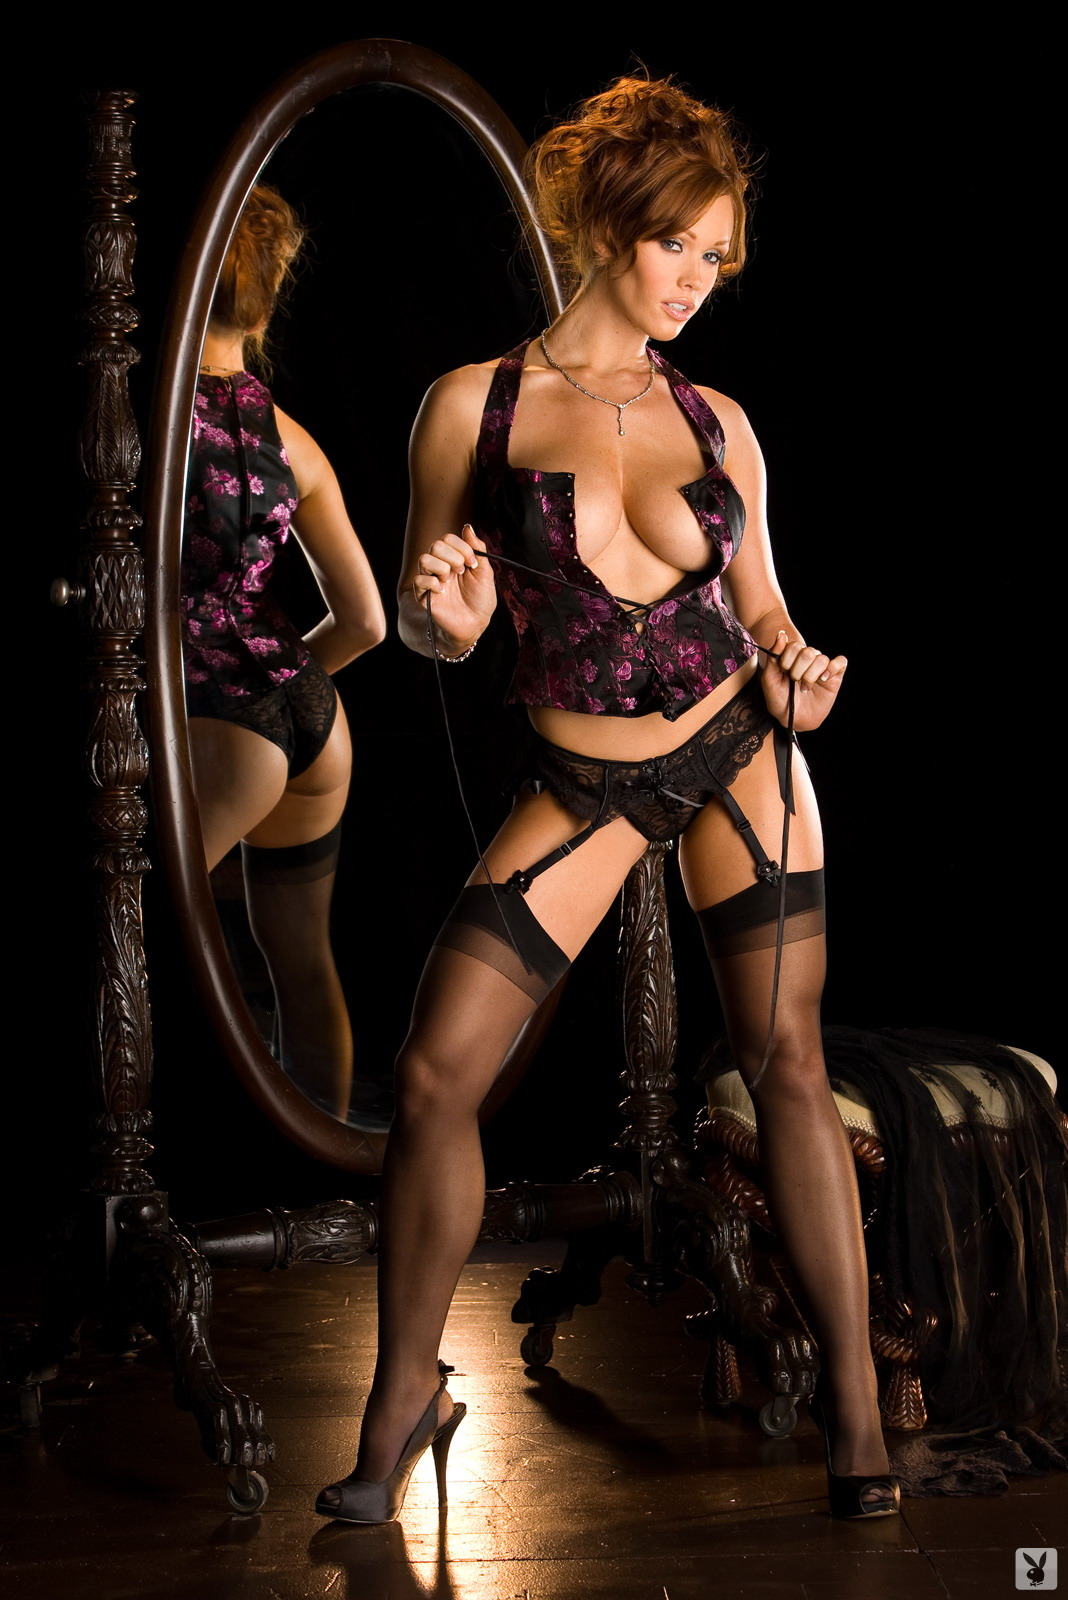 christine-smith-corset-stockings-playboy-06